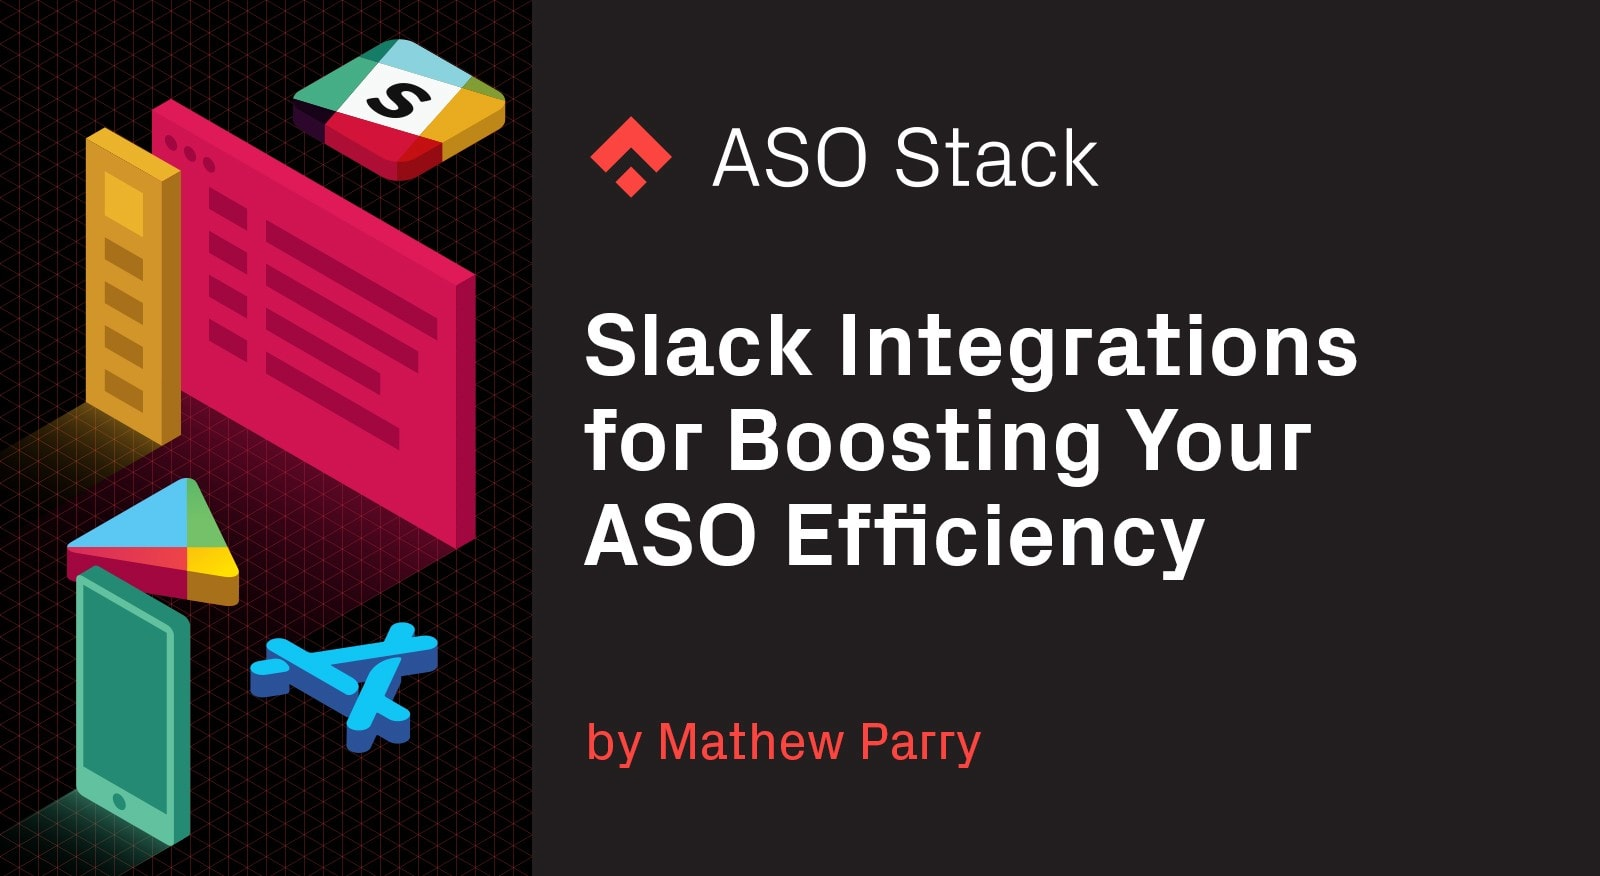 Slack Integrations for Boosting Your ASO Efficiency